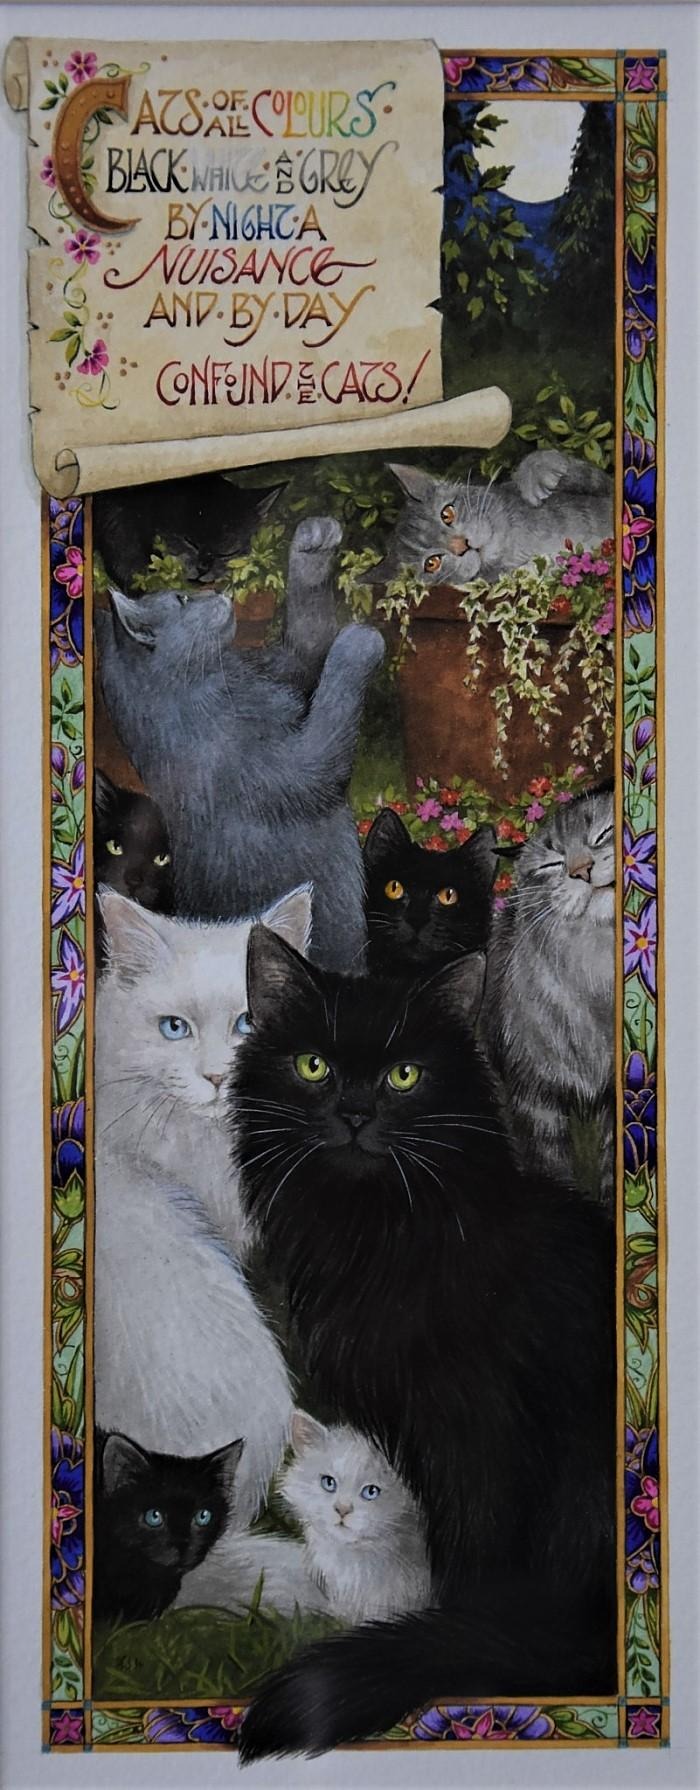 'Confound the Cats' Inspired by Orlando Thomas Dobbin Watercolour by Debby Faulkner-Stevens